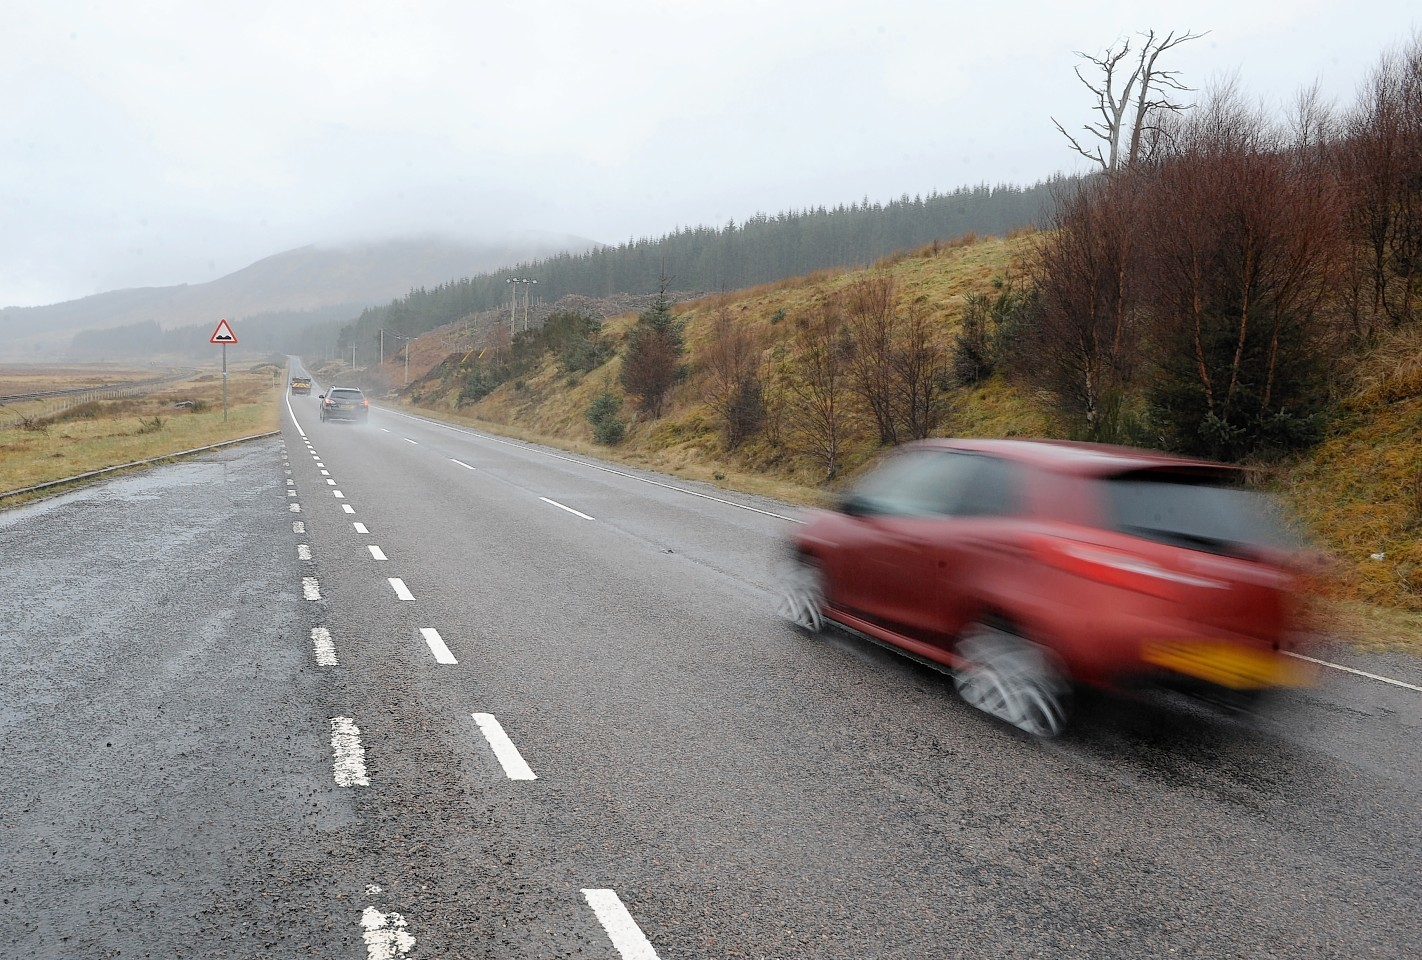 The A832 at Achanalt in Ross-shire where Esdert Prins was caught by police driving at 130mph in a 60mph zone.